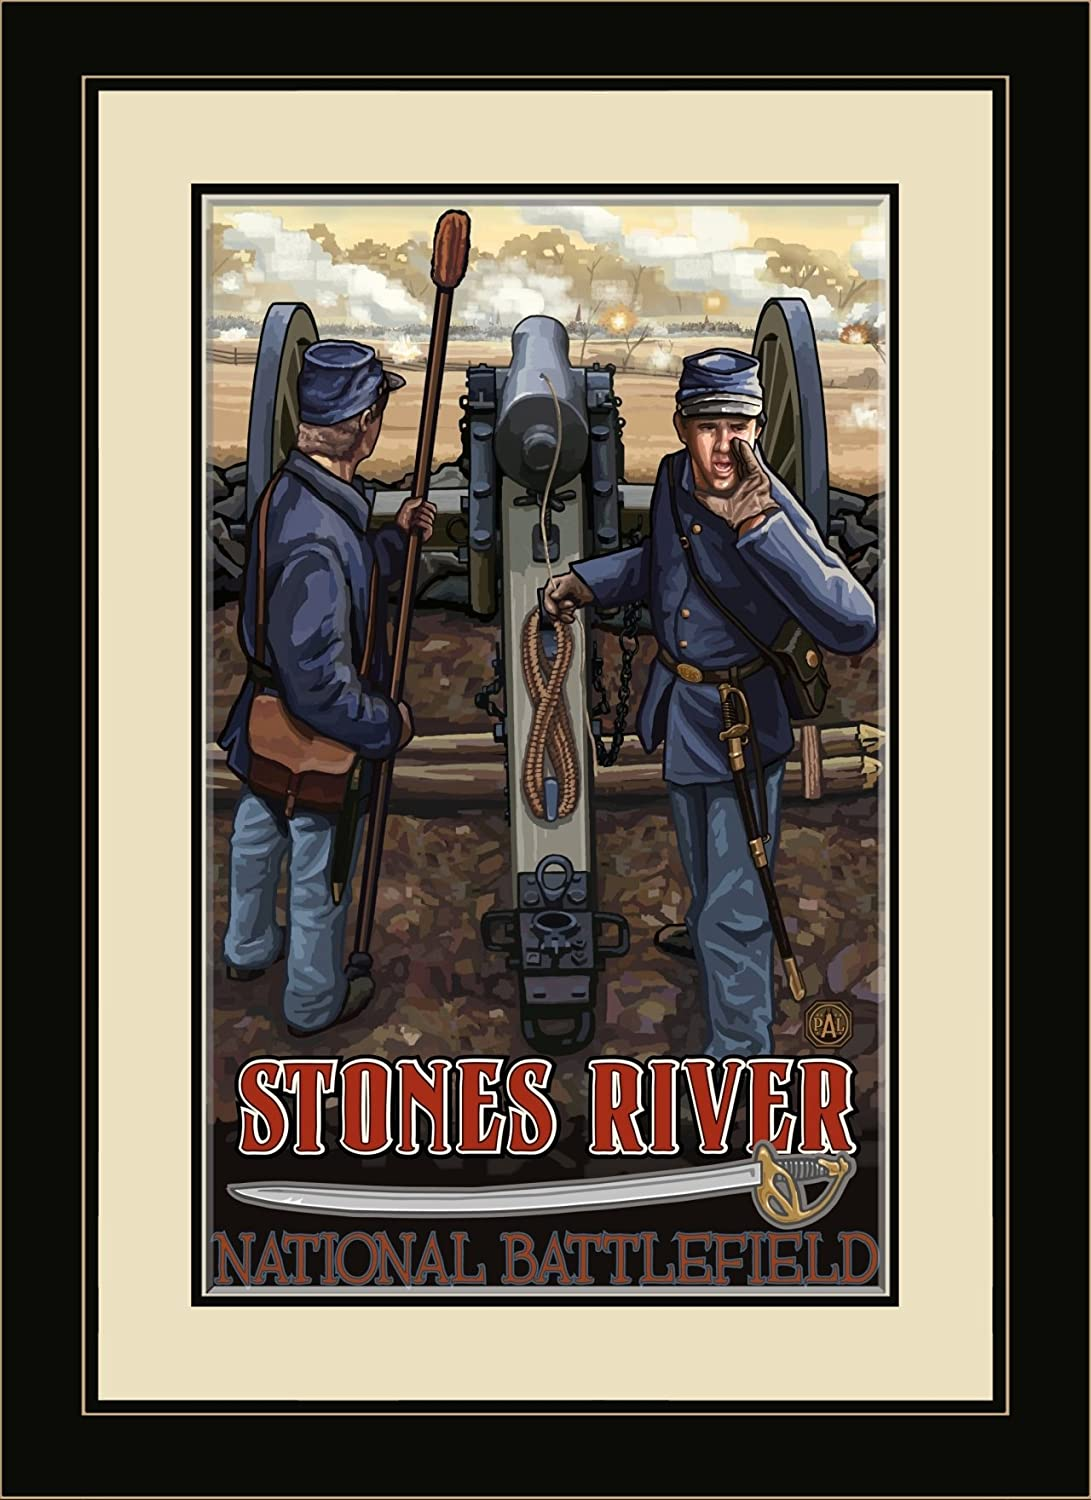 Northwest Art Mall pal-3816 mfgdm Stones River National Battlefield Bürgerkrieg Cannon gerahmtes Wandbild Art von Künstler Paul A lanquist 33 x 40,6 cm Satin schwarz